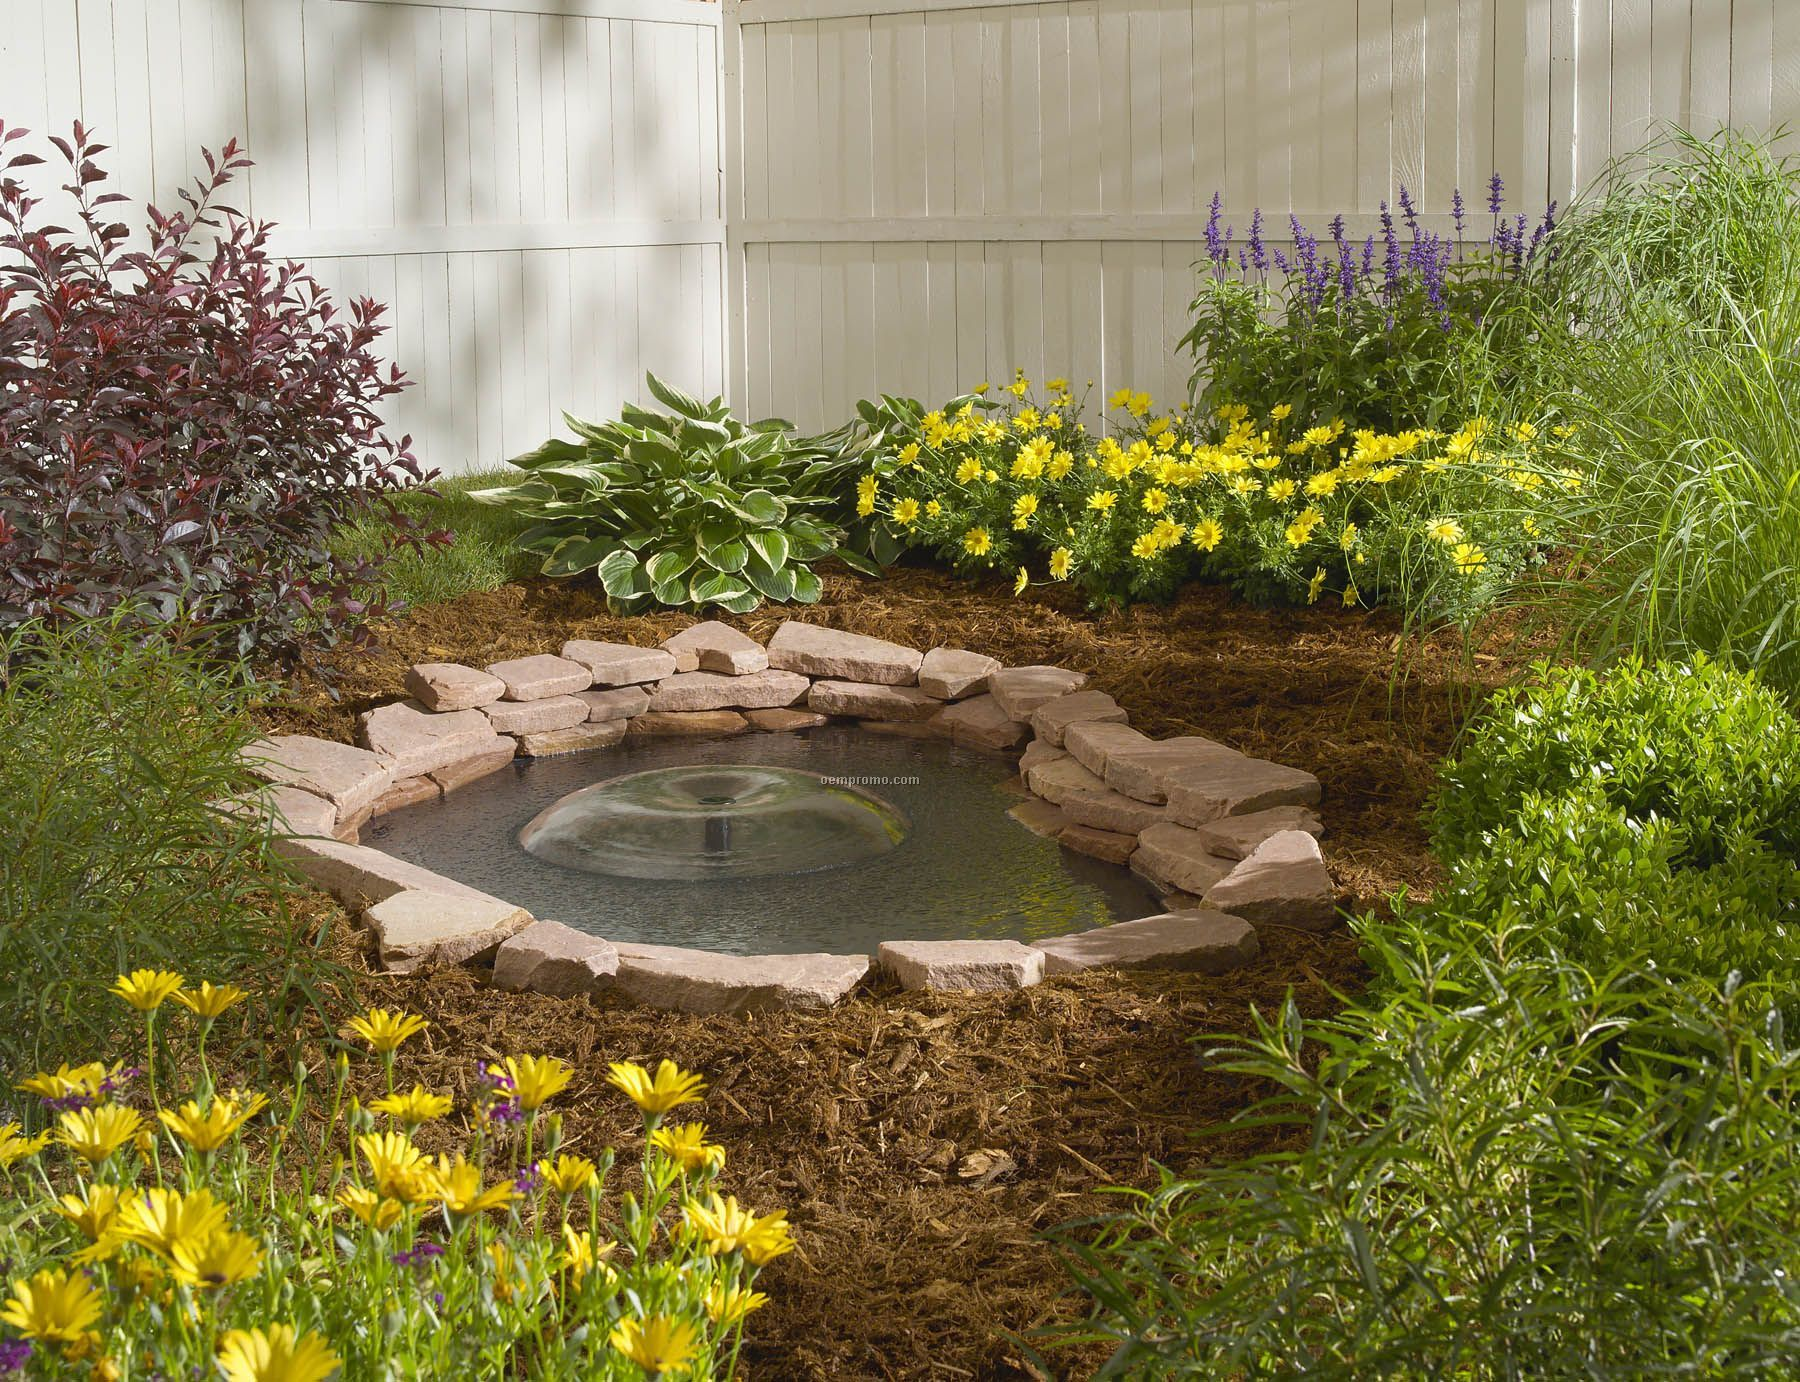 Sunterra Bubbling Brook Pond Kit